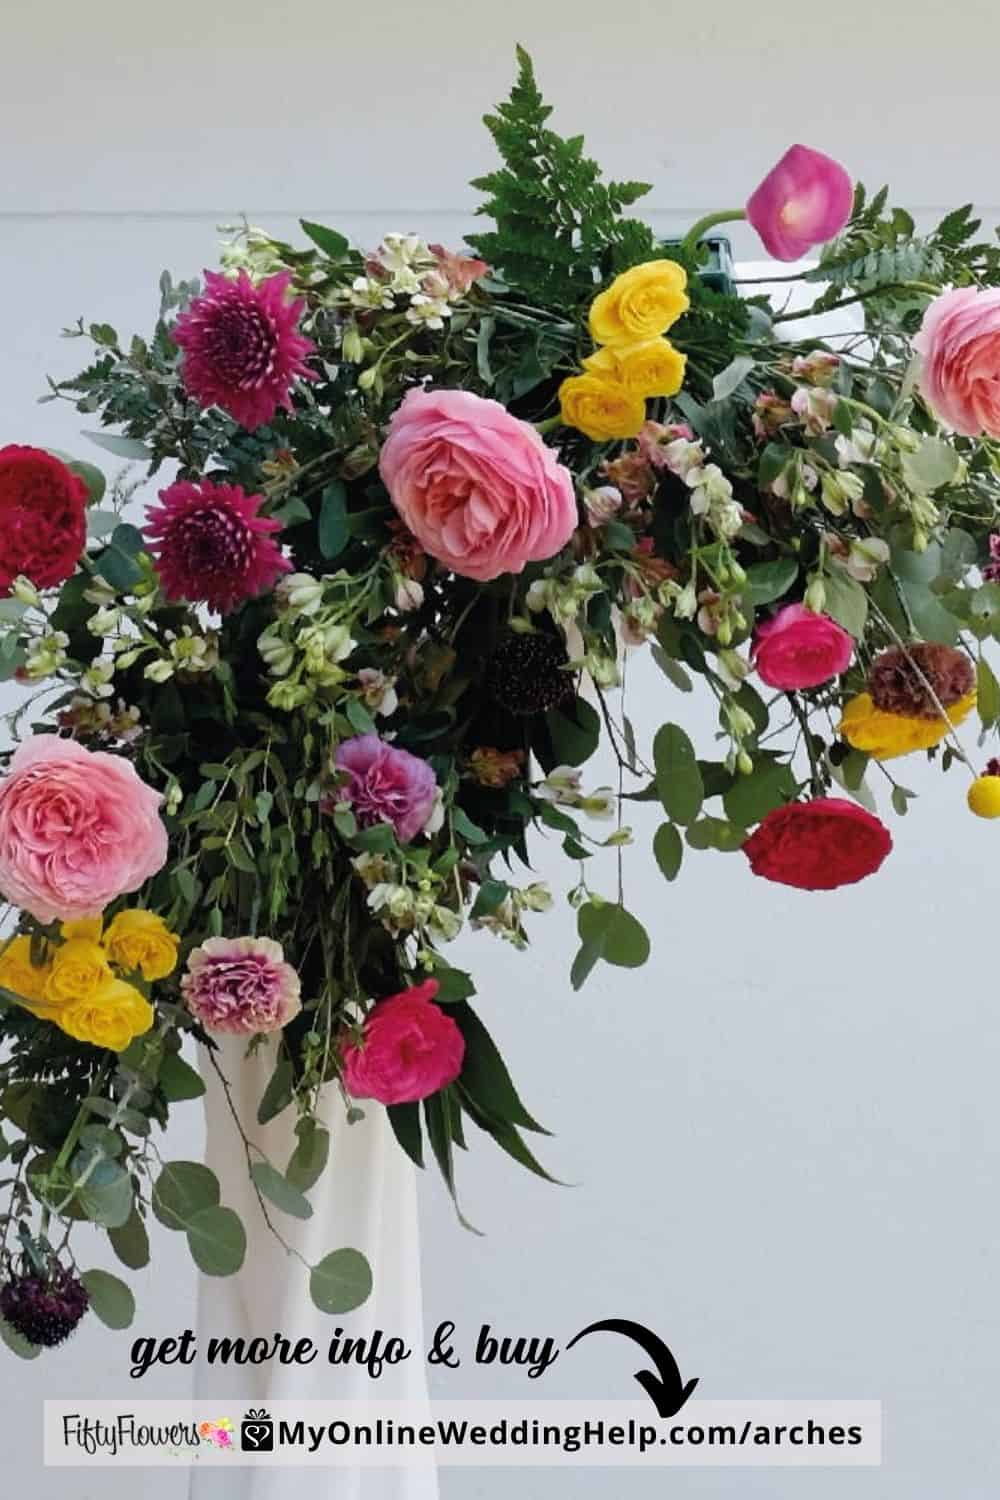 DIY Wedding Arch. Enchanted Summer with a variety of flowers and foliage.